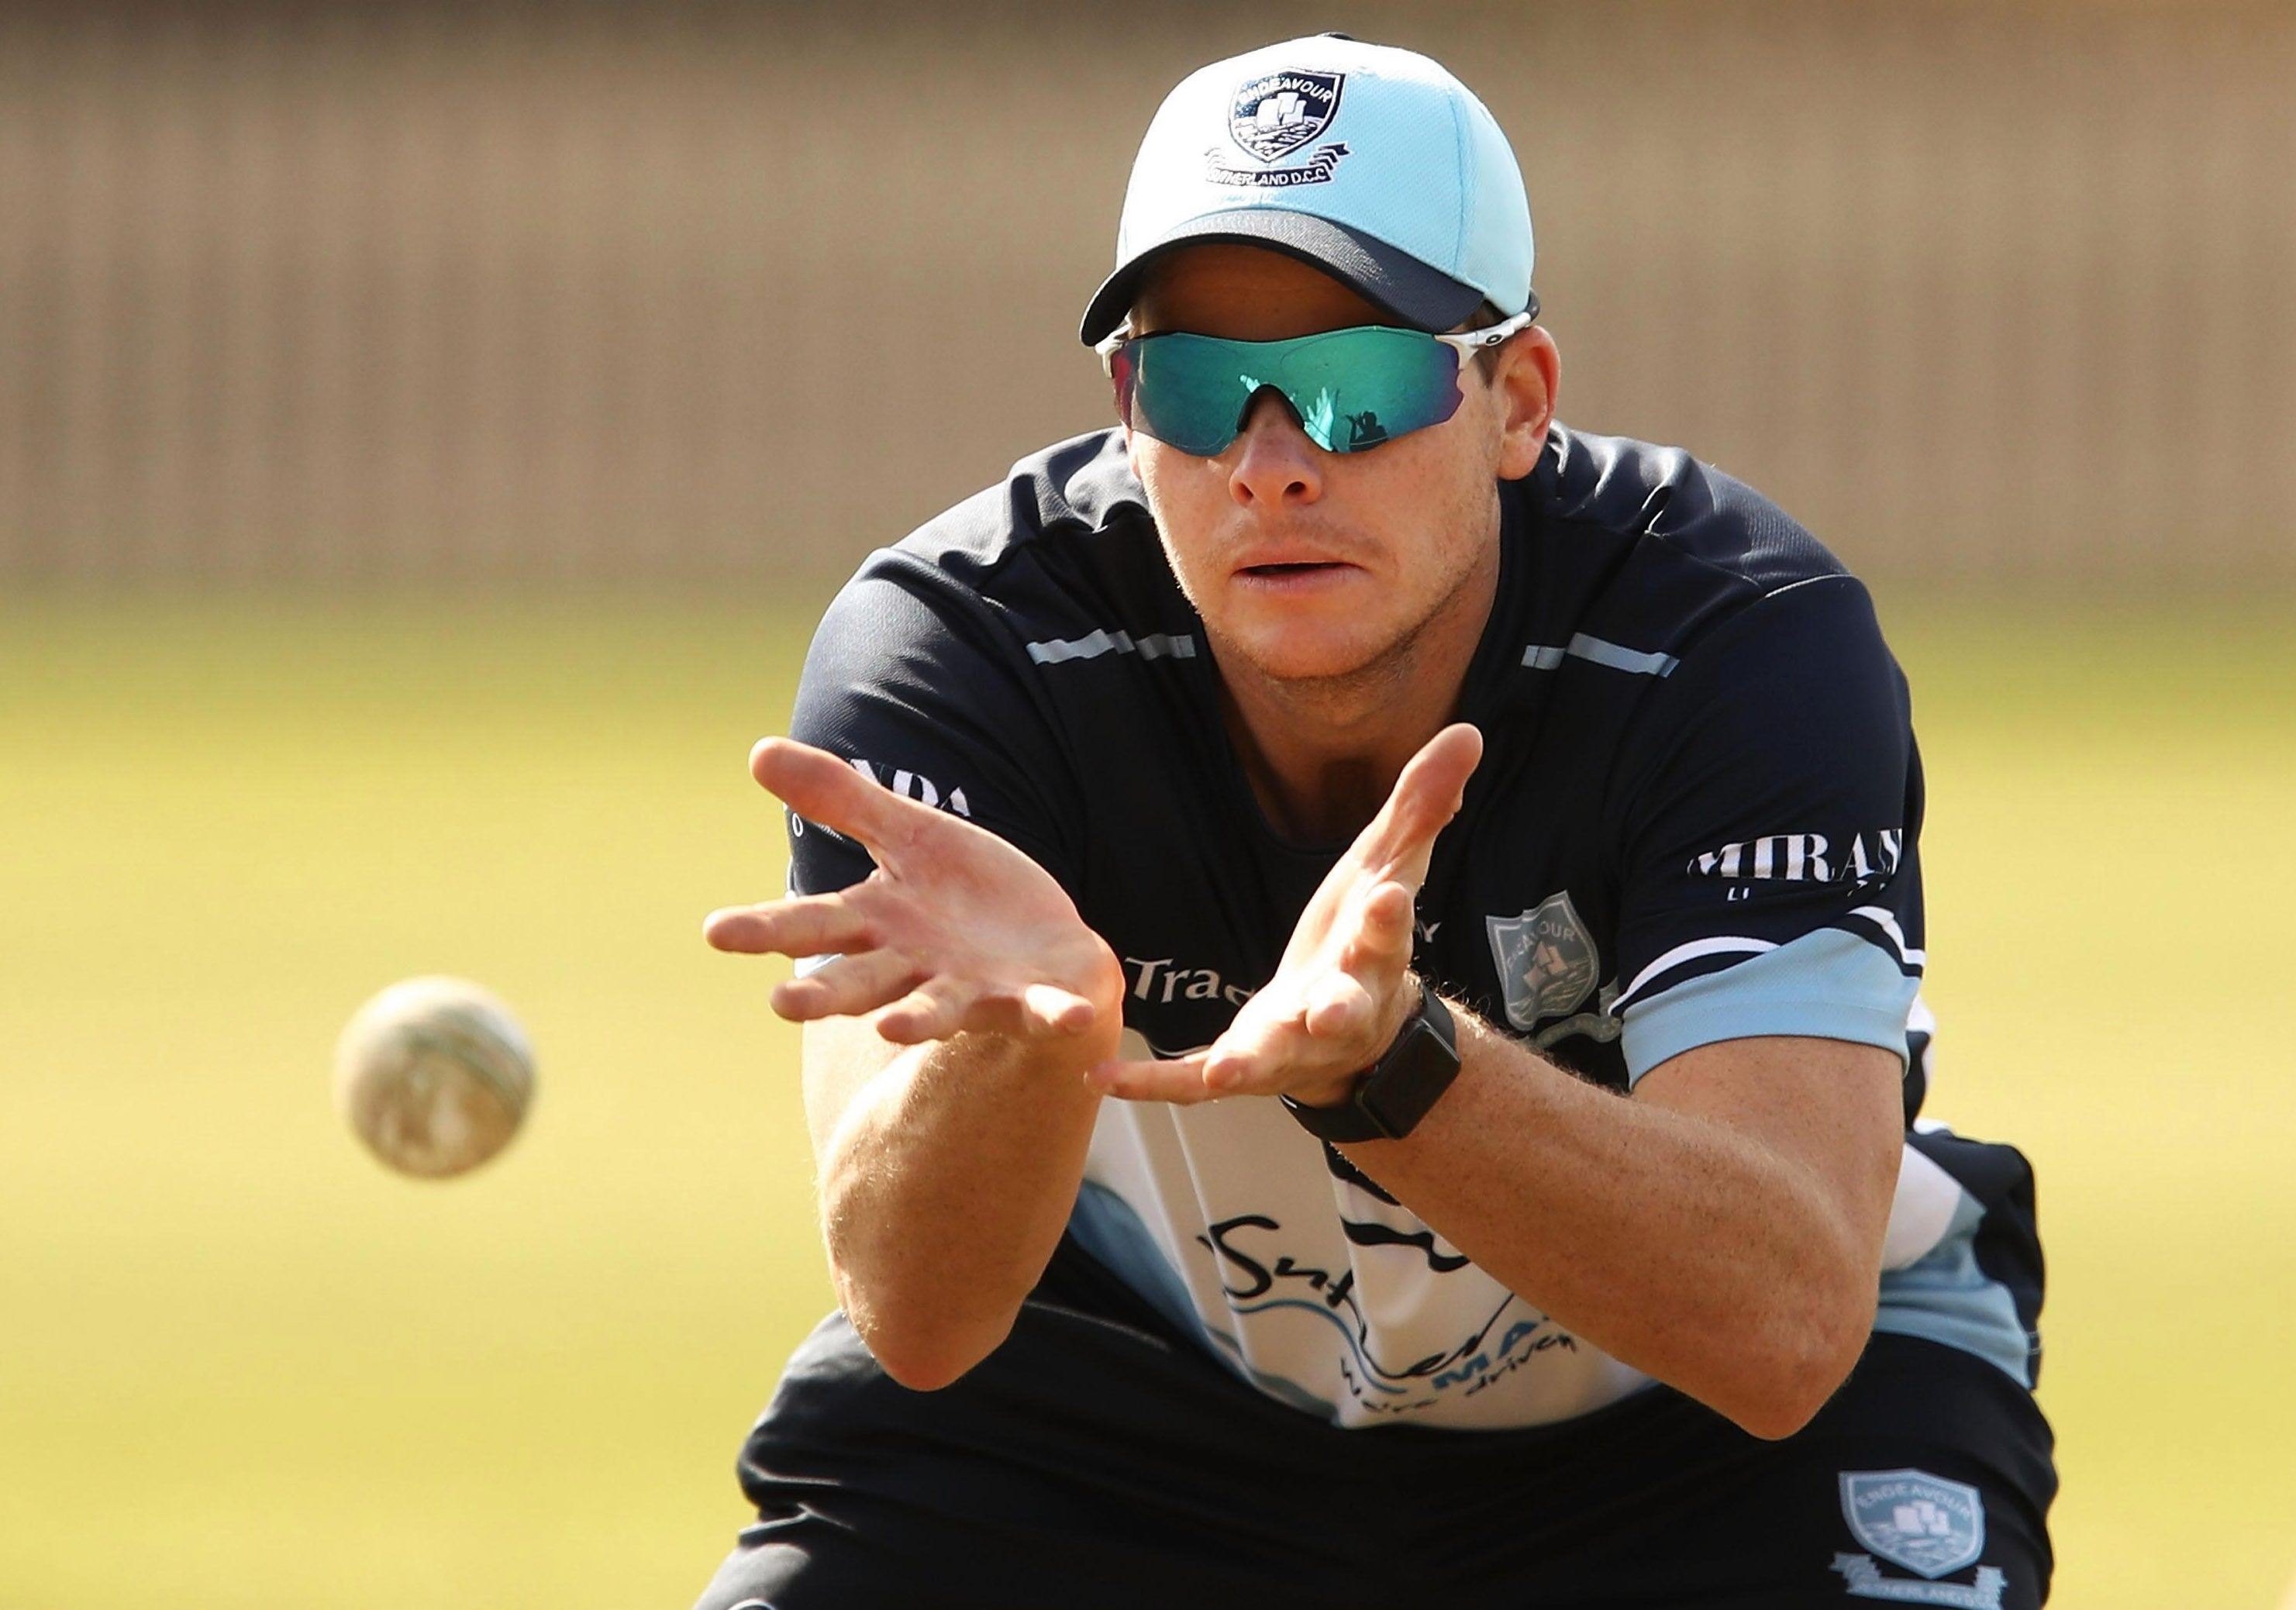 Steve Smith will return to action in the Pakistan Super League